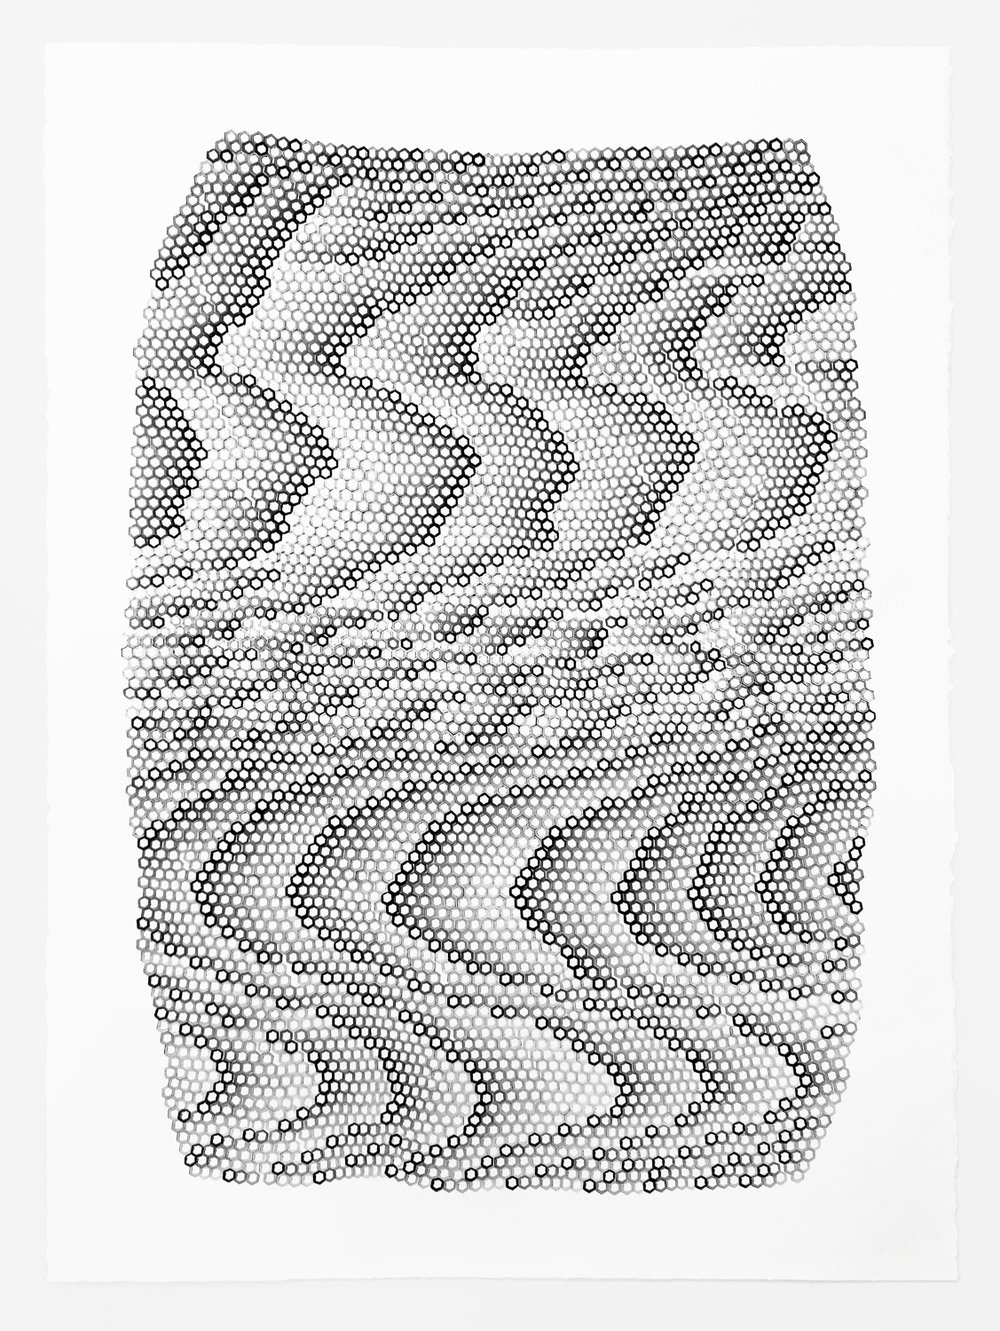 Hexagons 1 ,  2018   stamped archival ink on 140 lb hot press watercolor paper 30 x 22 in (76.2 x 55.9 cm)